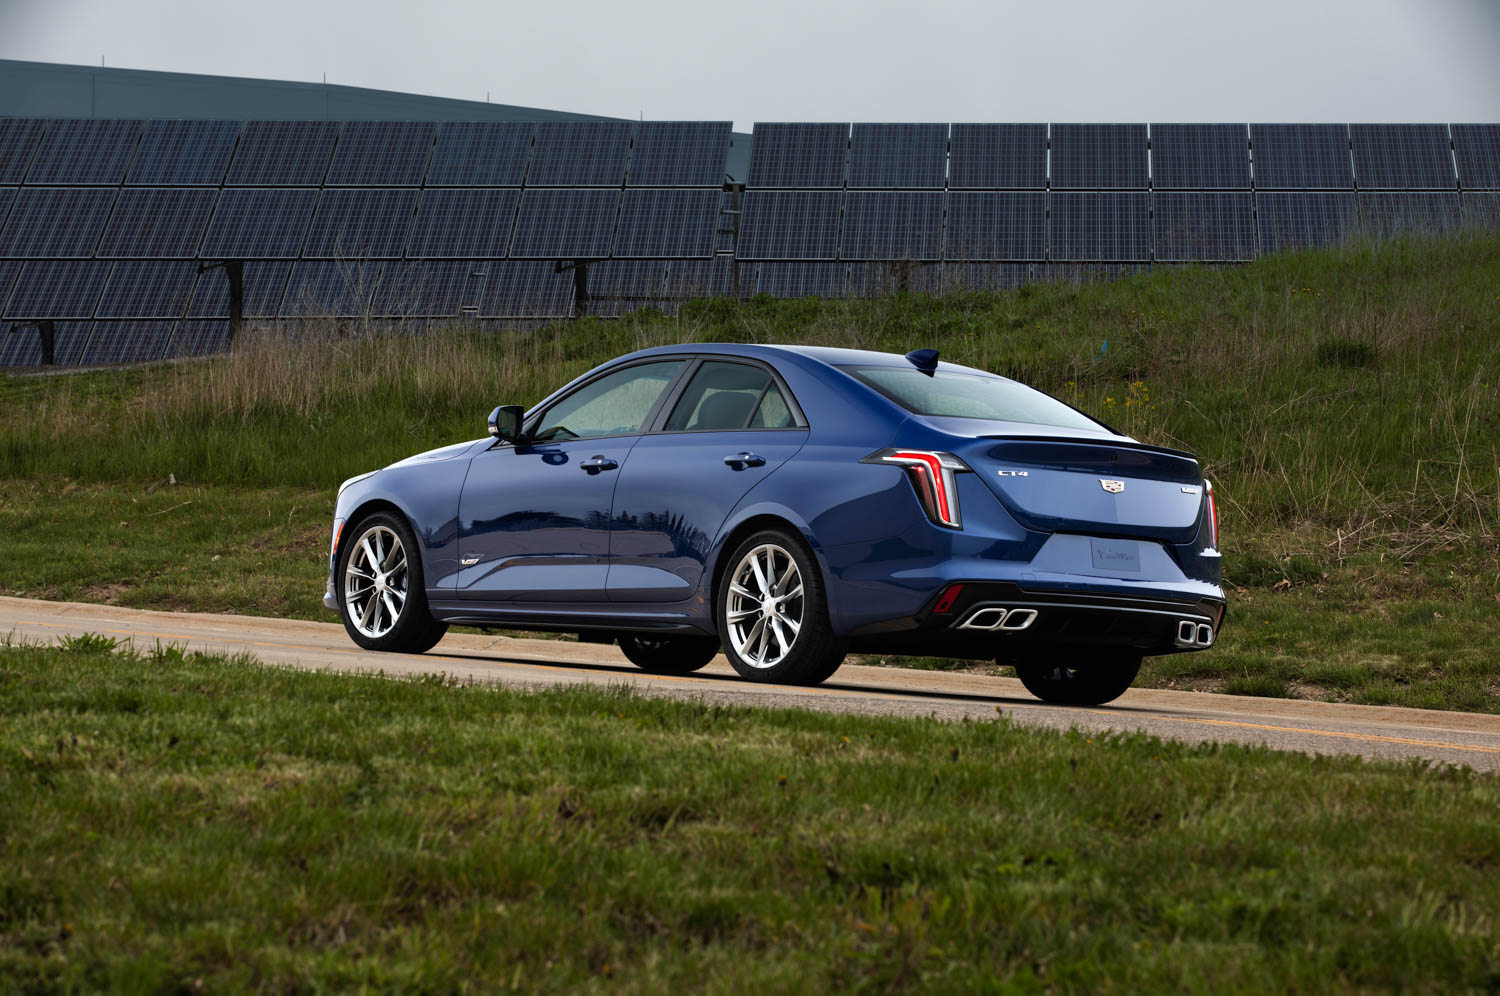 2020 Cadillac CT4-V rear 3/4 driving